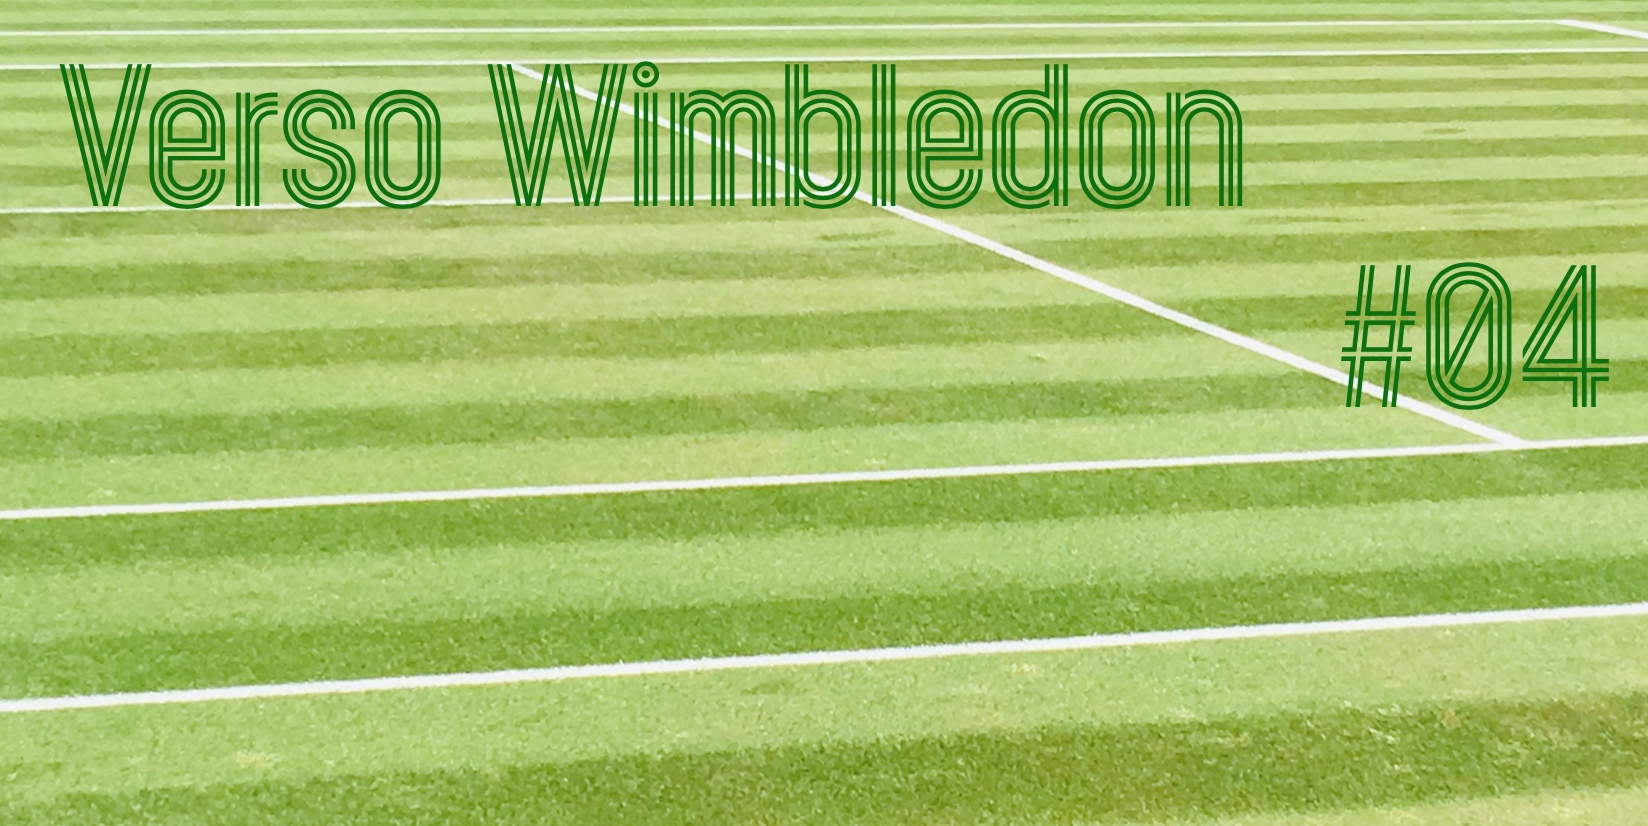 Verso Wimbledon #4 - settesei.it